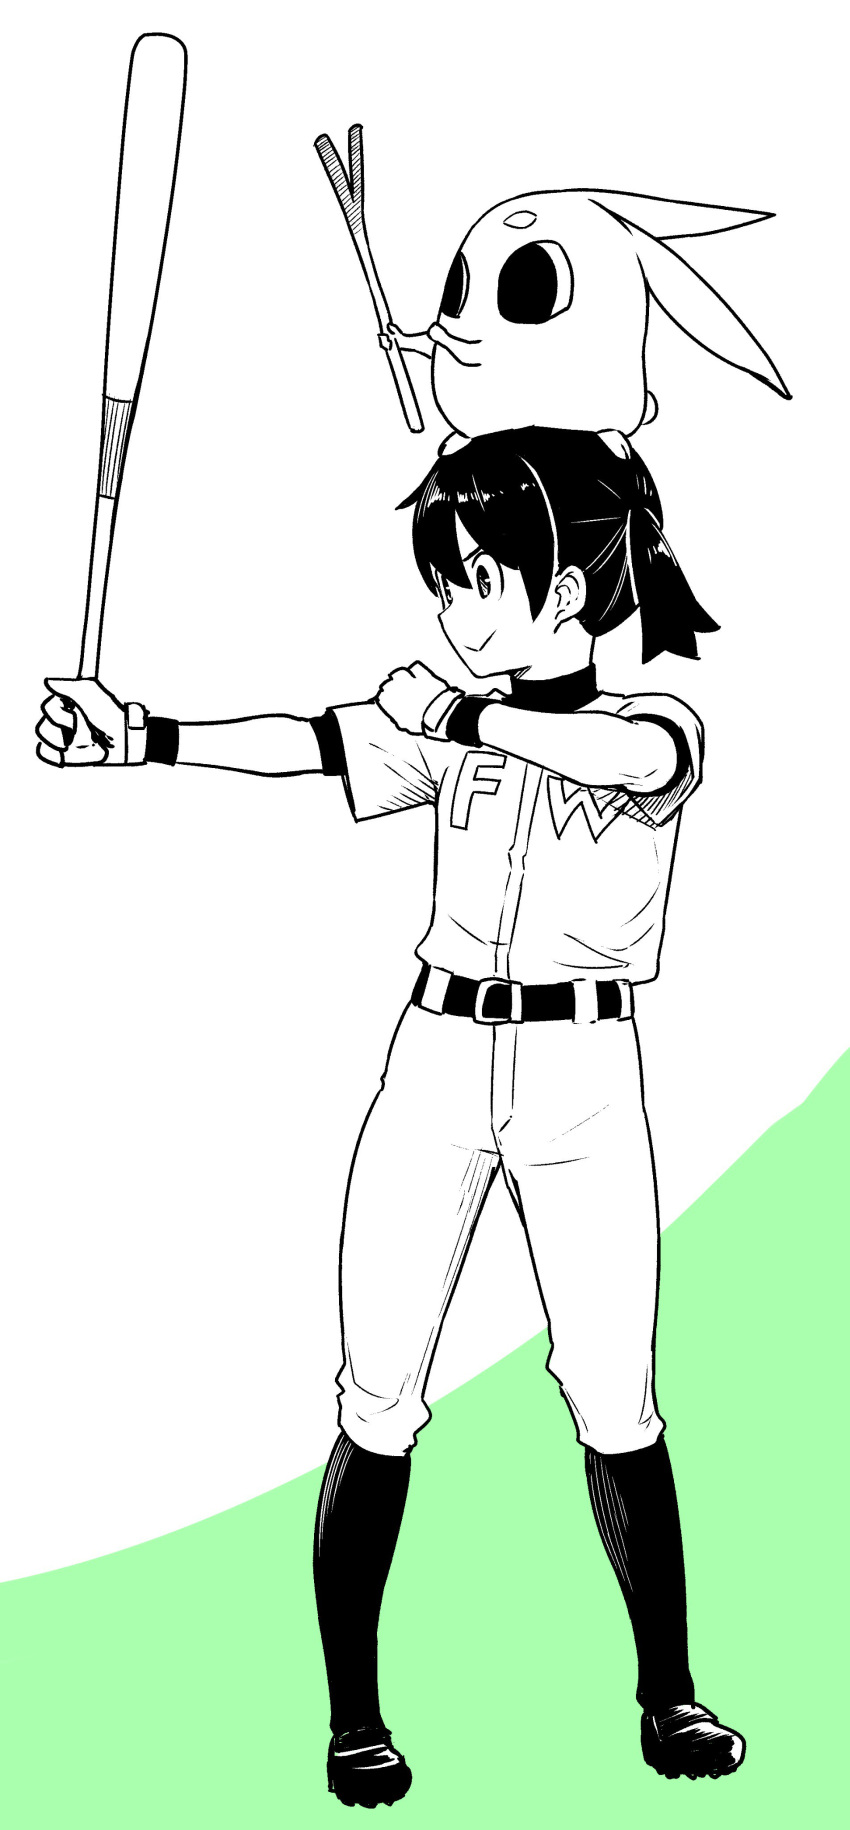 1girl absurdres baseball baseball_bat baseball_uniform character_request commentary flying_witch gloves hand_on_own_shoulder highres ishizuka_chihiro kuramoto_chinatsu official_art simple_background sportswear spring_onion suzuki_ichirou